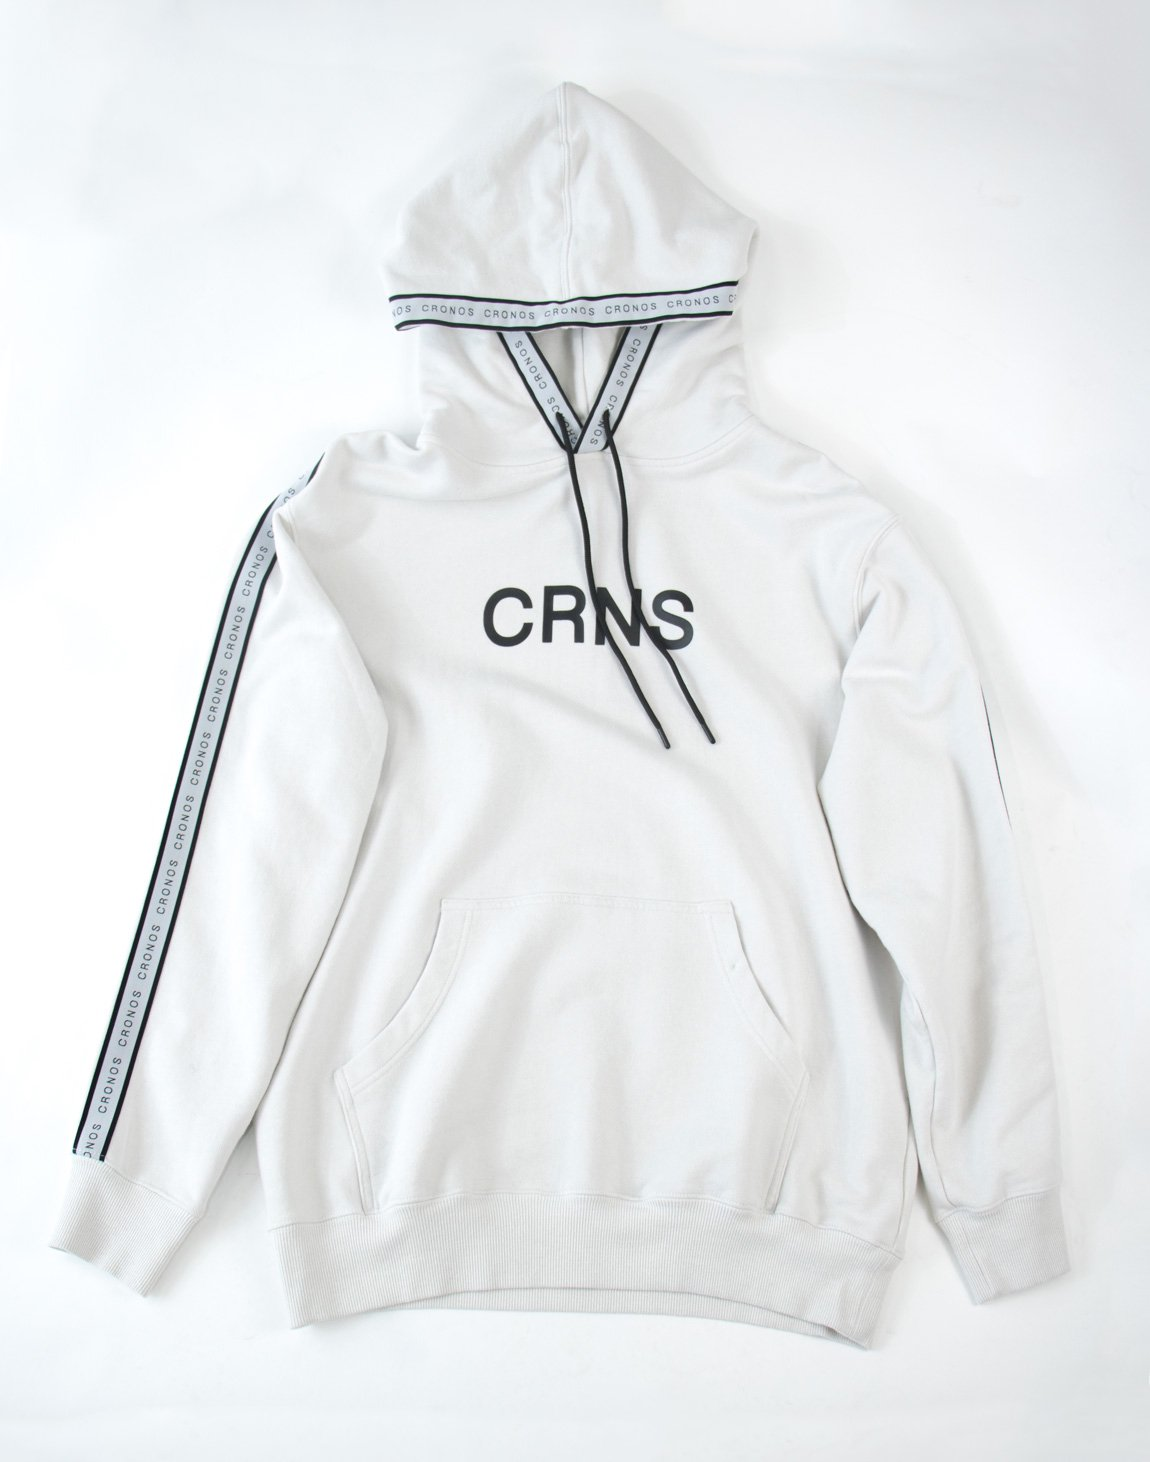 <img class='new_mark_img1' src='https://img.shop-pro.jp/img/new/icons1.gif' style='border:none;display:inline;margin:0px;padding:0px;width:auto;' />CRNS Log Tape Pull Over Parka WHITE